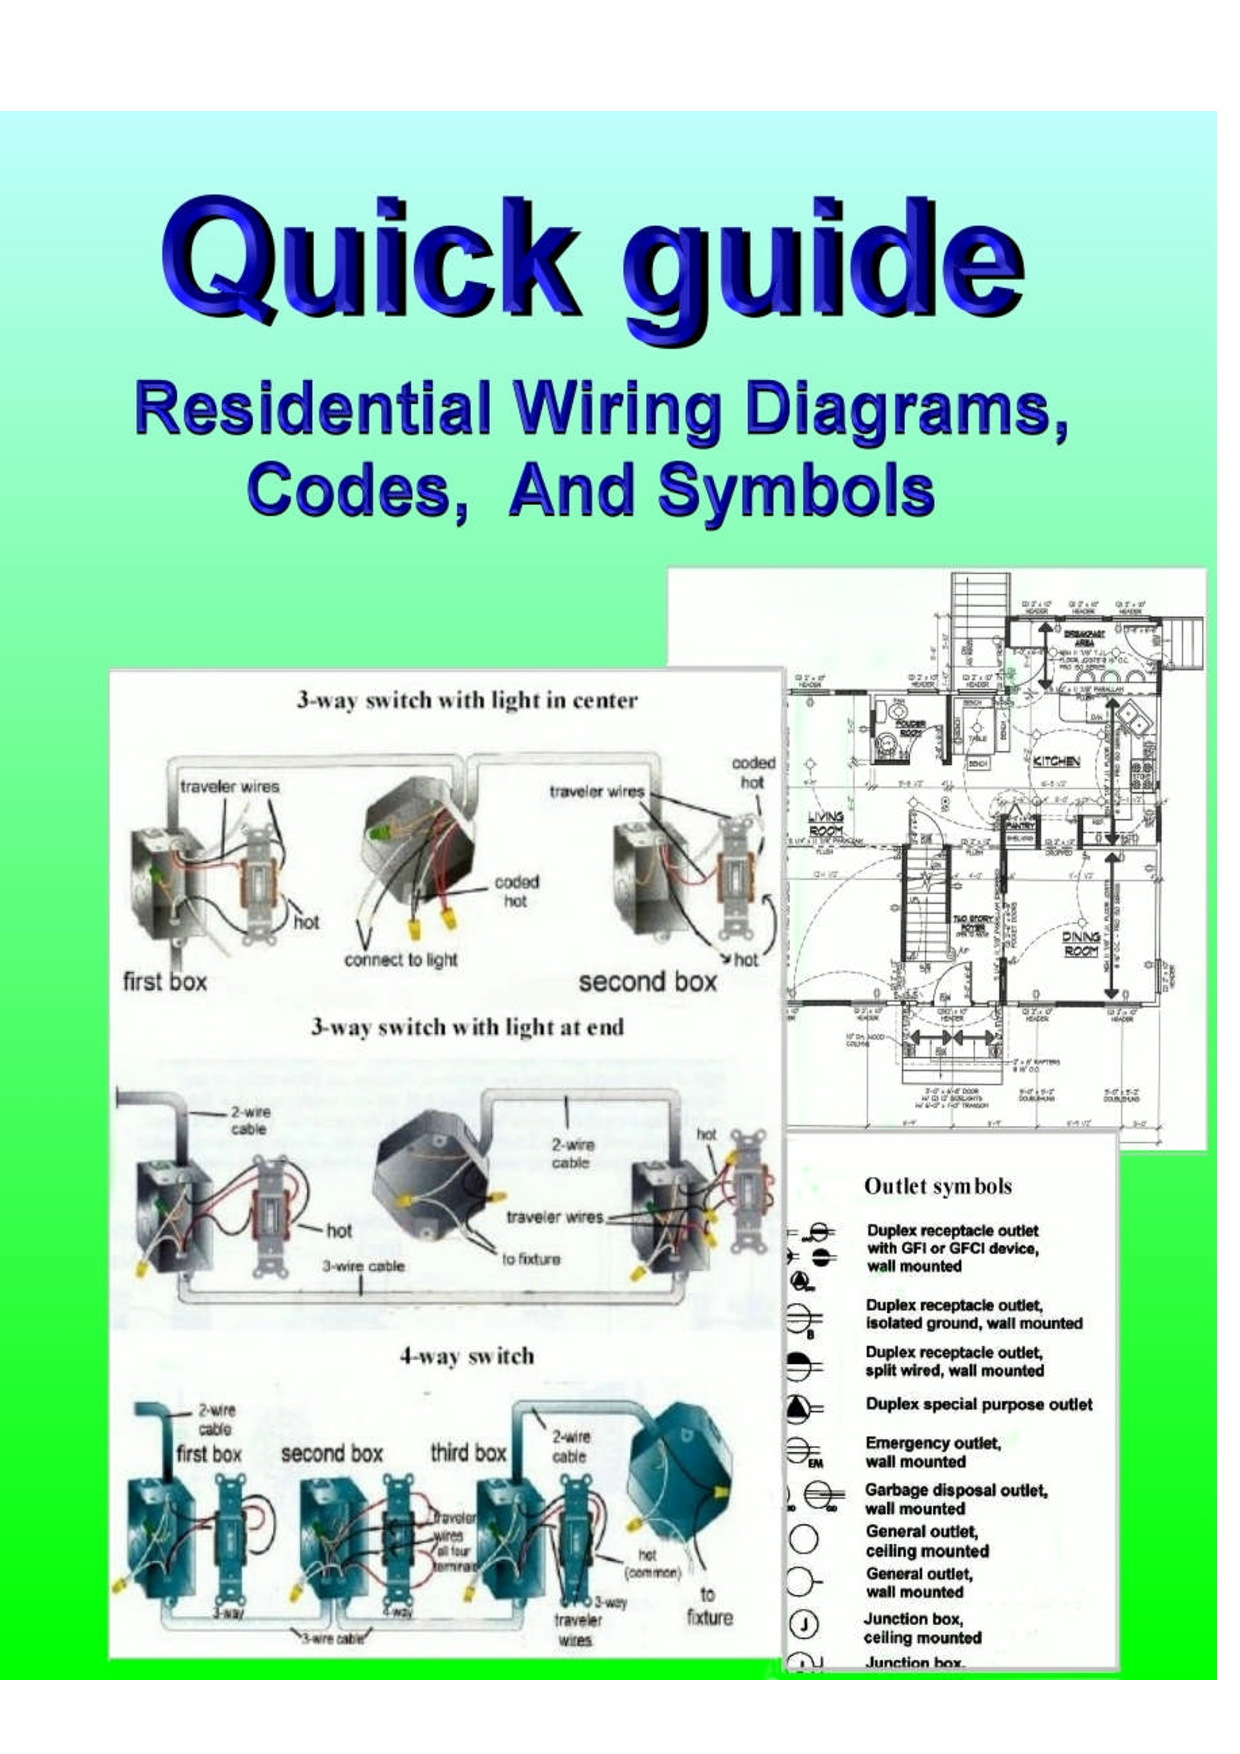 Home Electrical Wiring Diagramspdf Download Legal Documents 39 Light Socket Diagram How To Install A Switch Pages With Many Diagrams And Illustrations Step By Guide